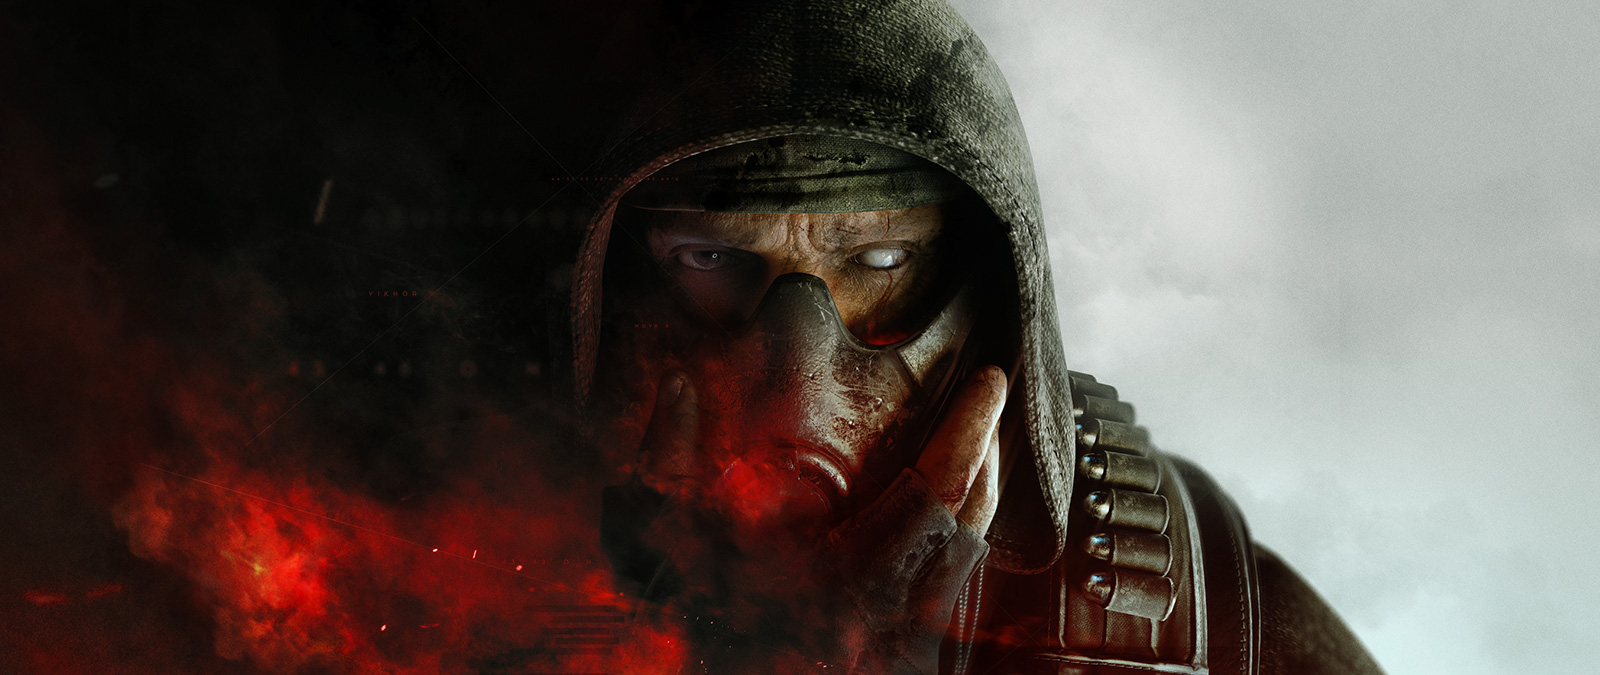 Character wearing a gas mask with red smoke around him with white smoke behind him